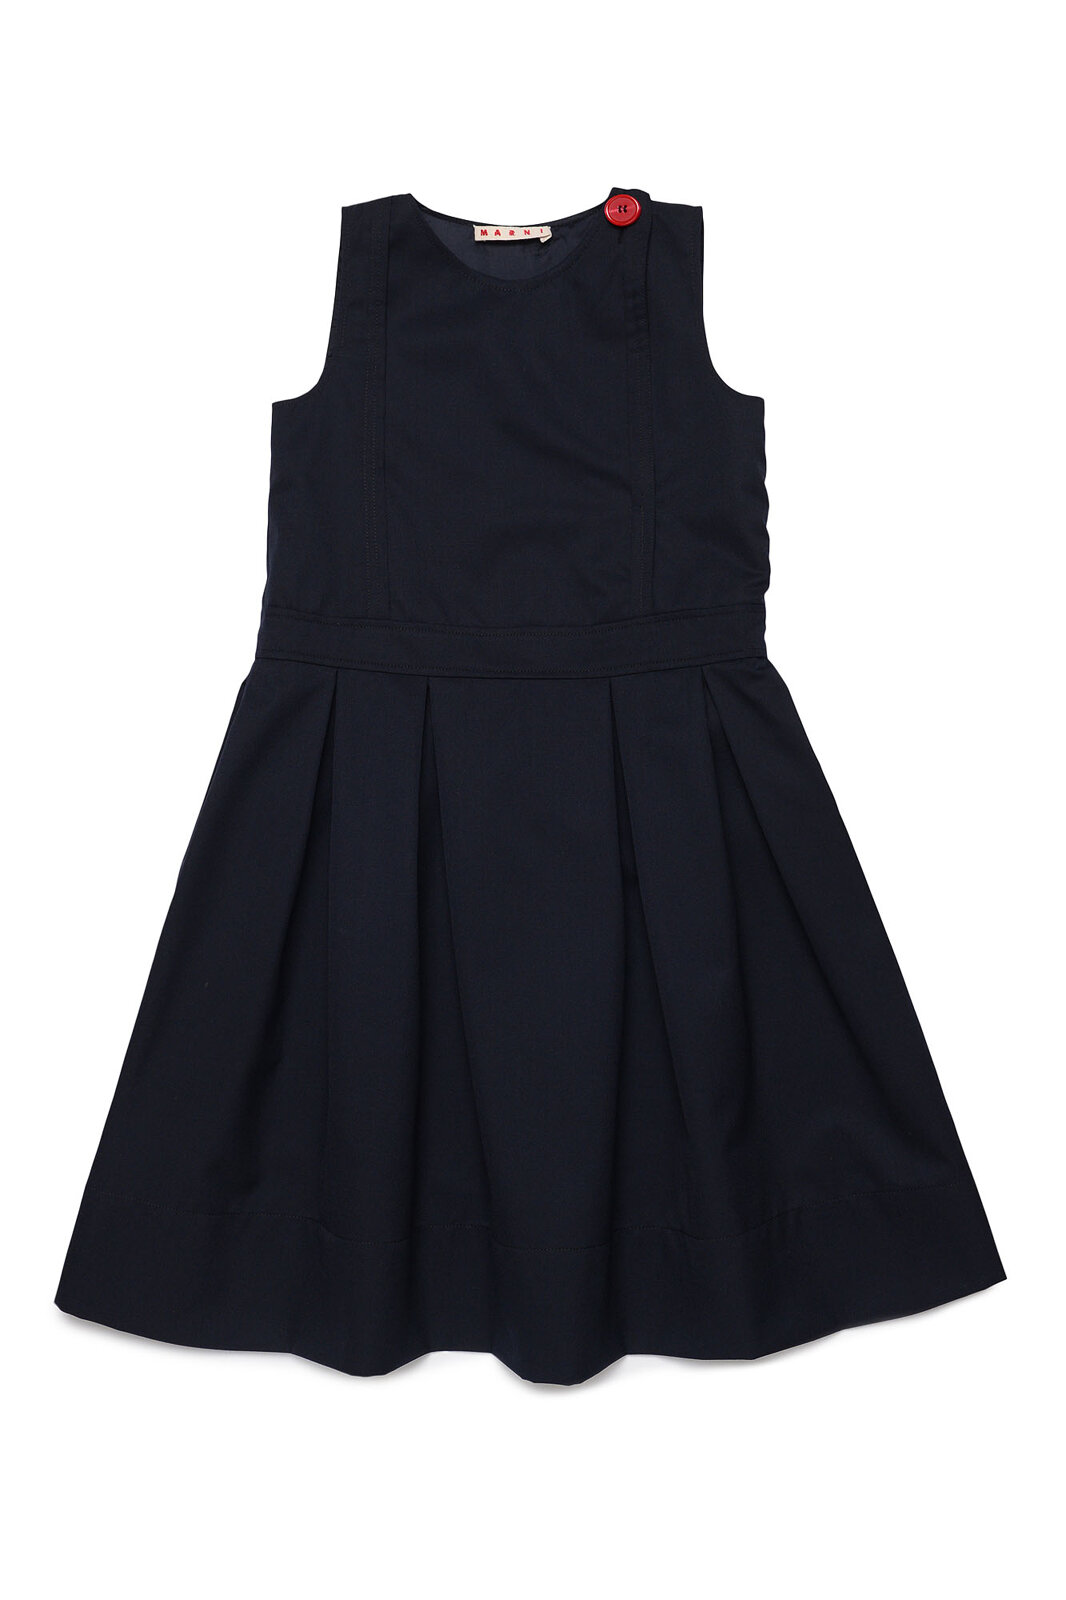 Dress - Marni Junior